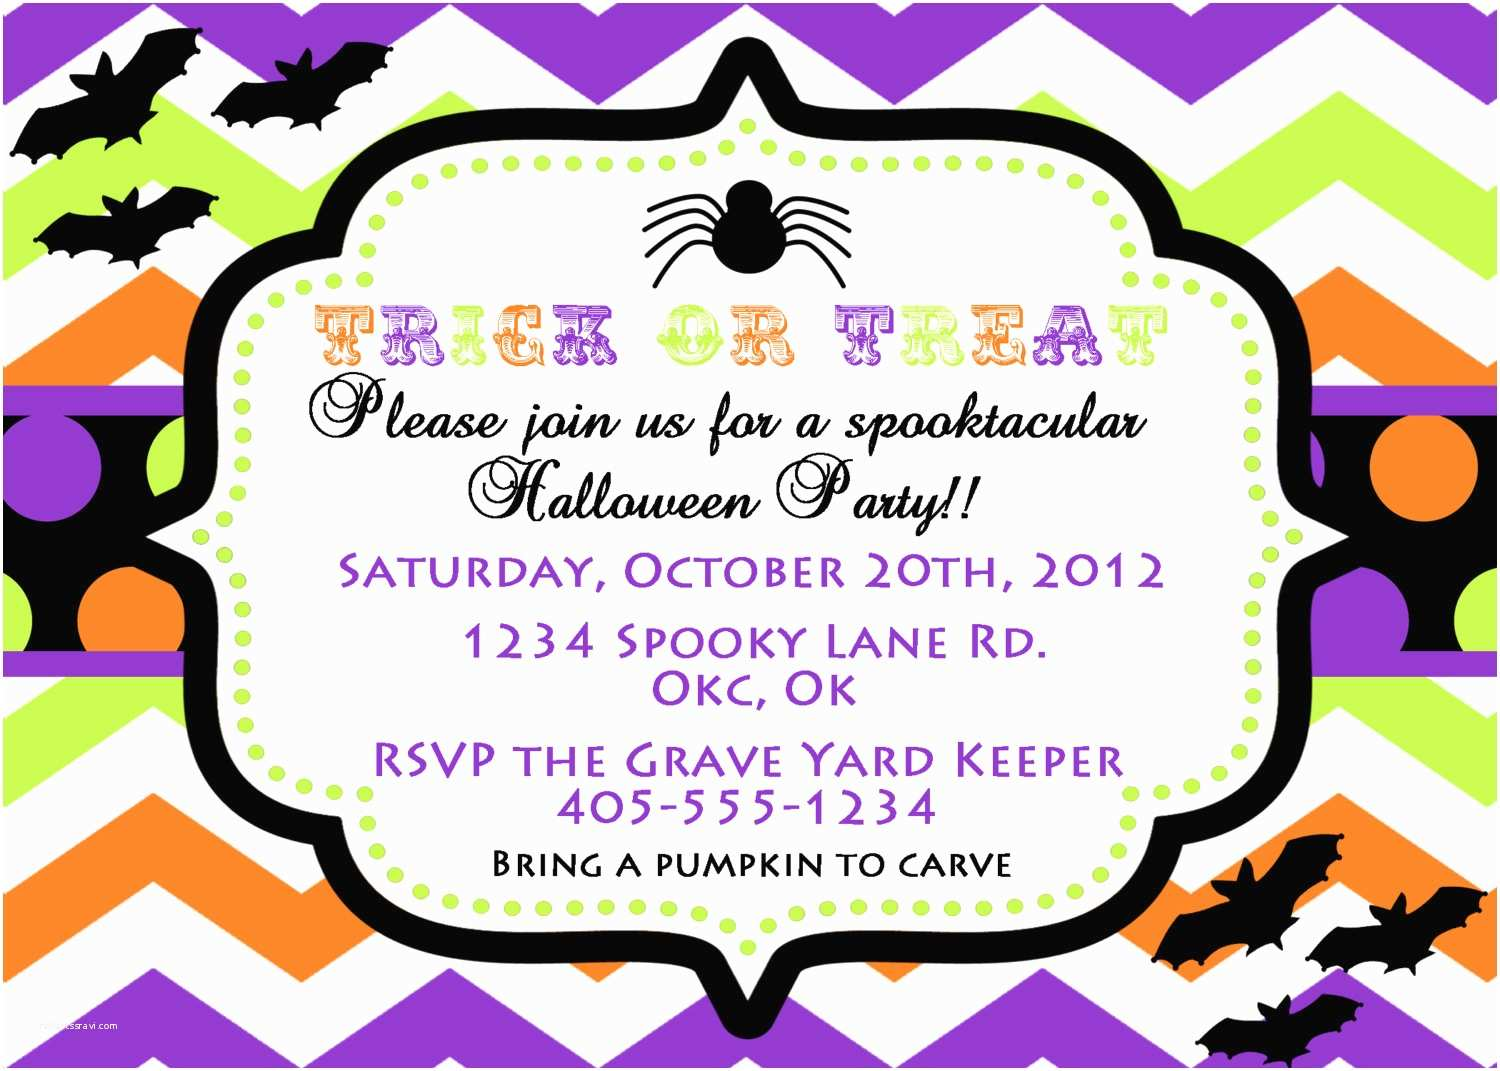 photo about Halloween Invitation Printable named Halloween Birthday Get together Invites Halloween Social gathering